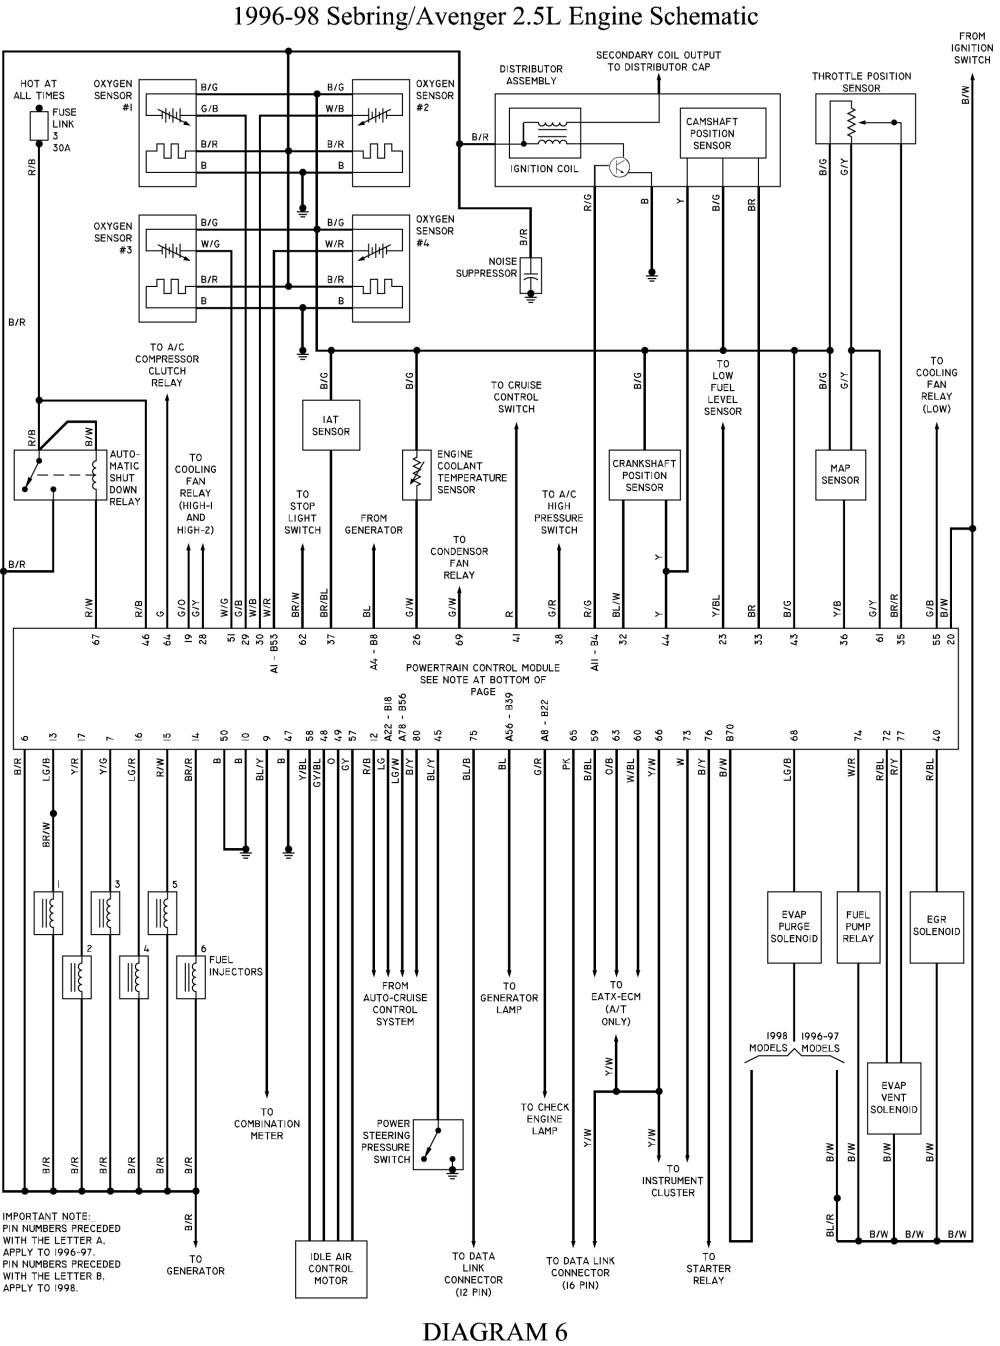 Chrysler 300 Wiring Schematic - Wiring Diagram